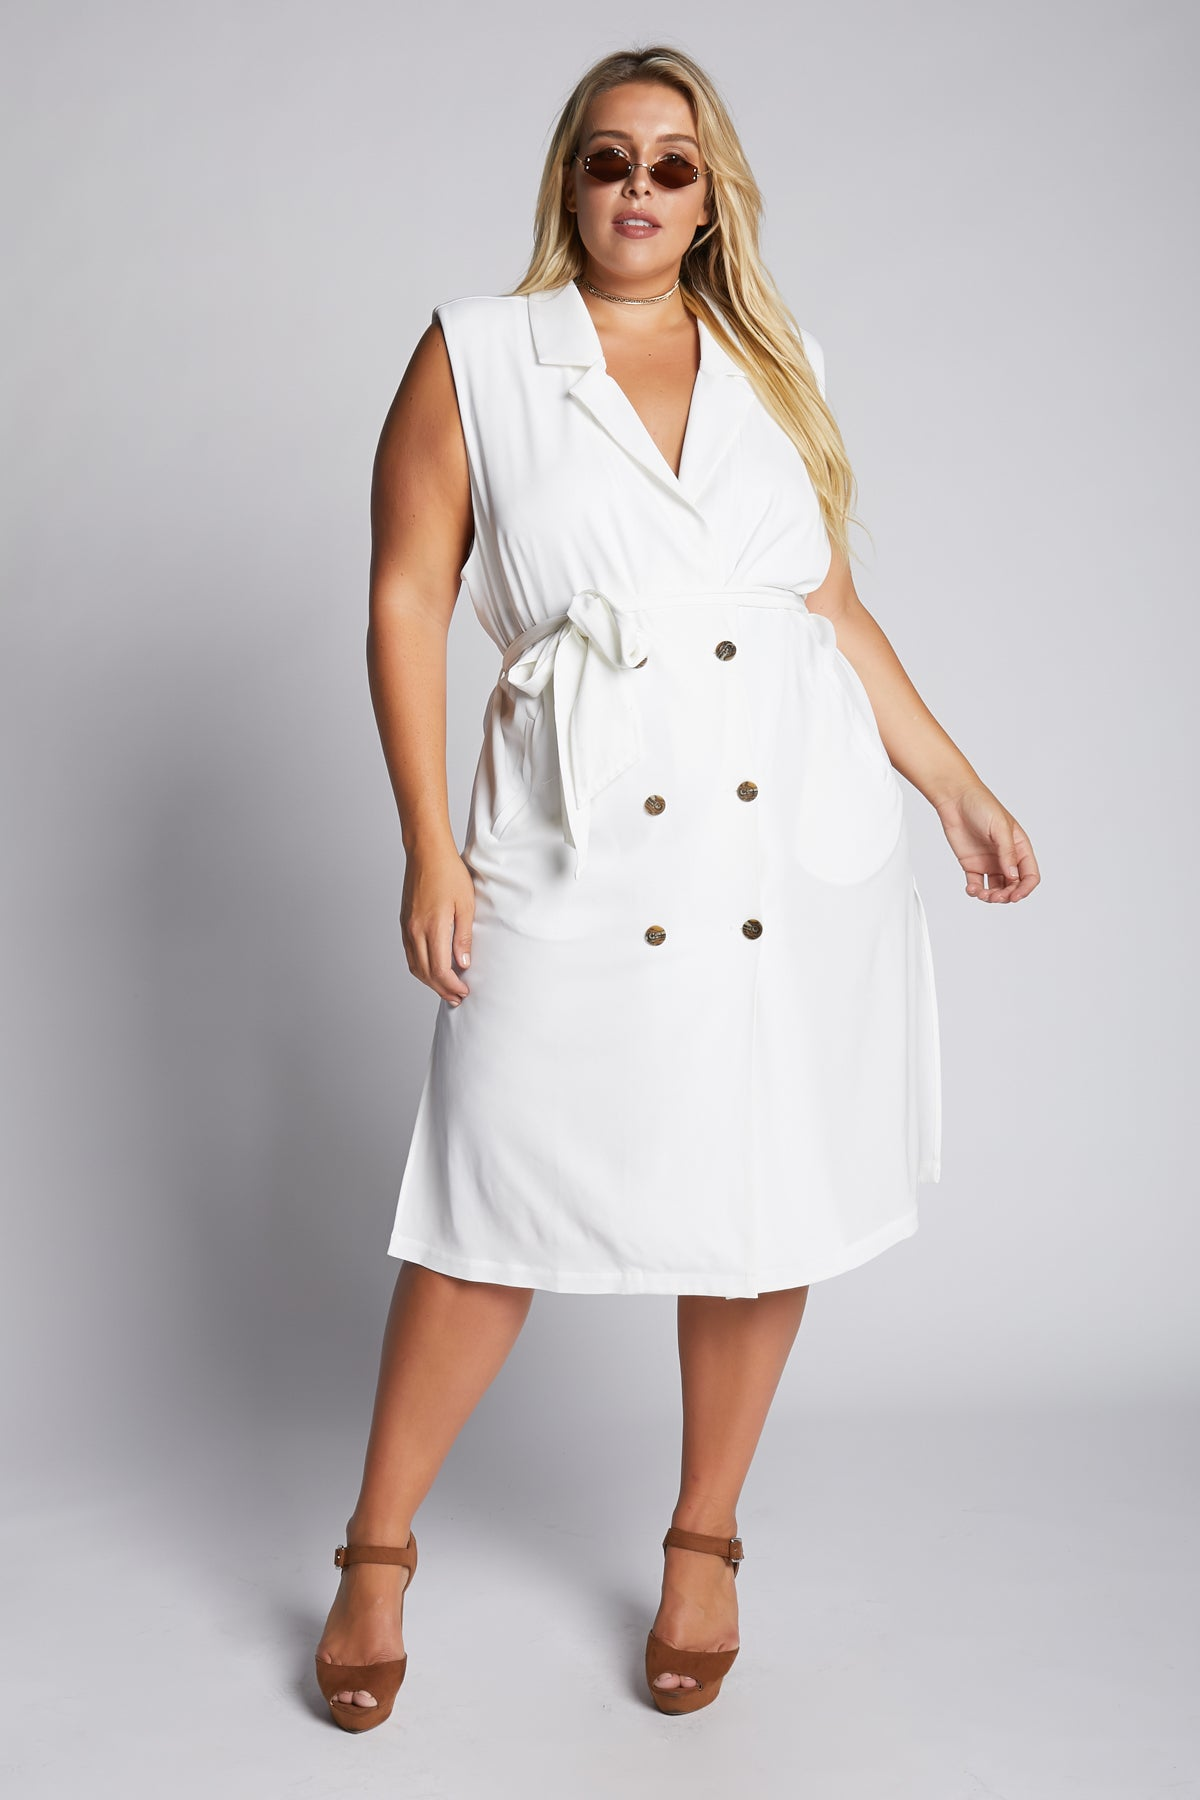 In The Trenches Sleeveless Jacket